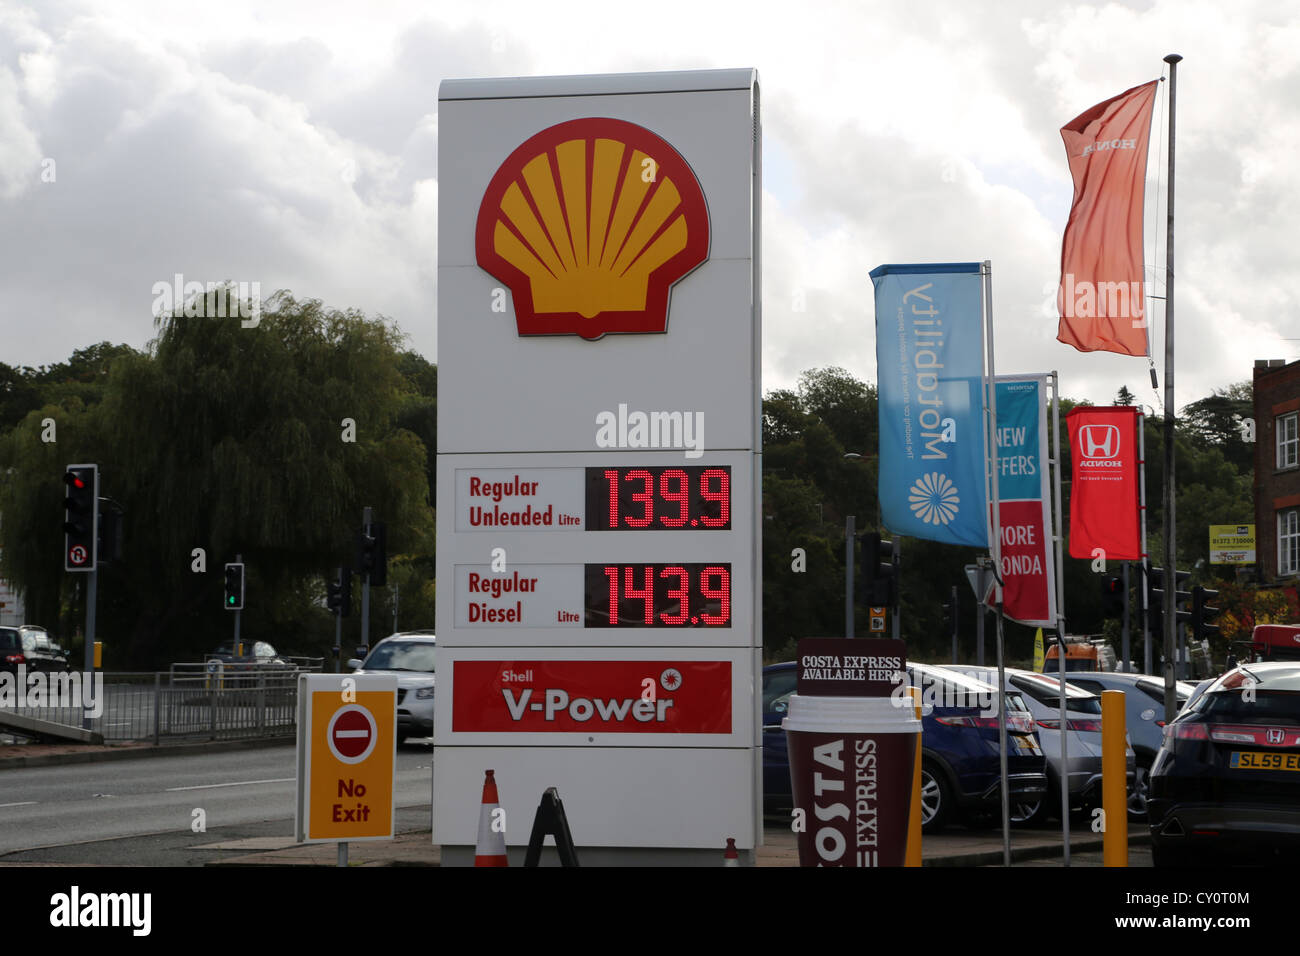 shell petrol station sign vpower regular unleaded and